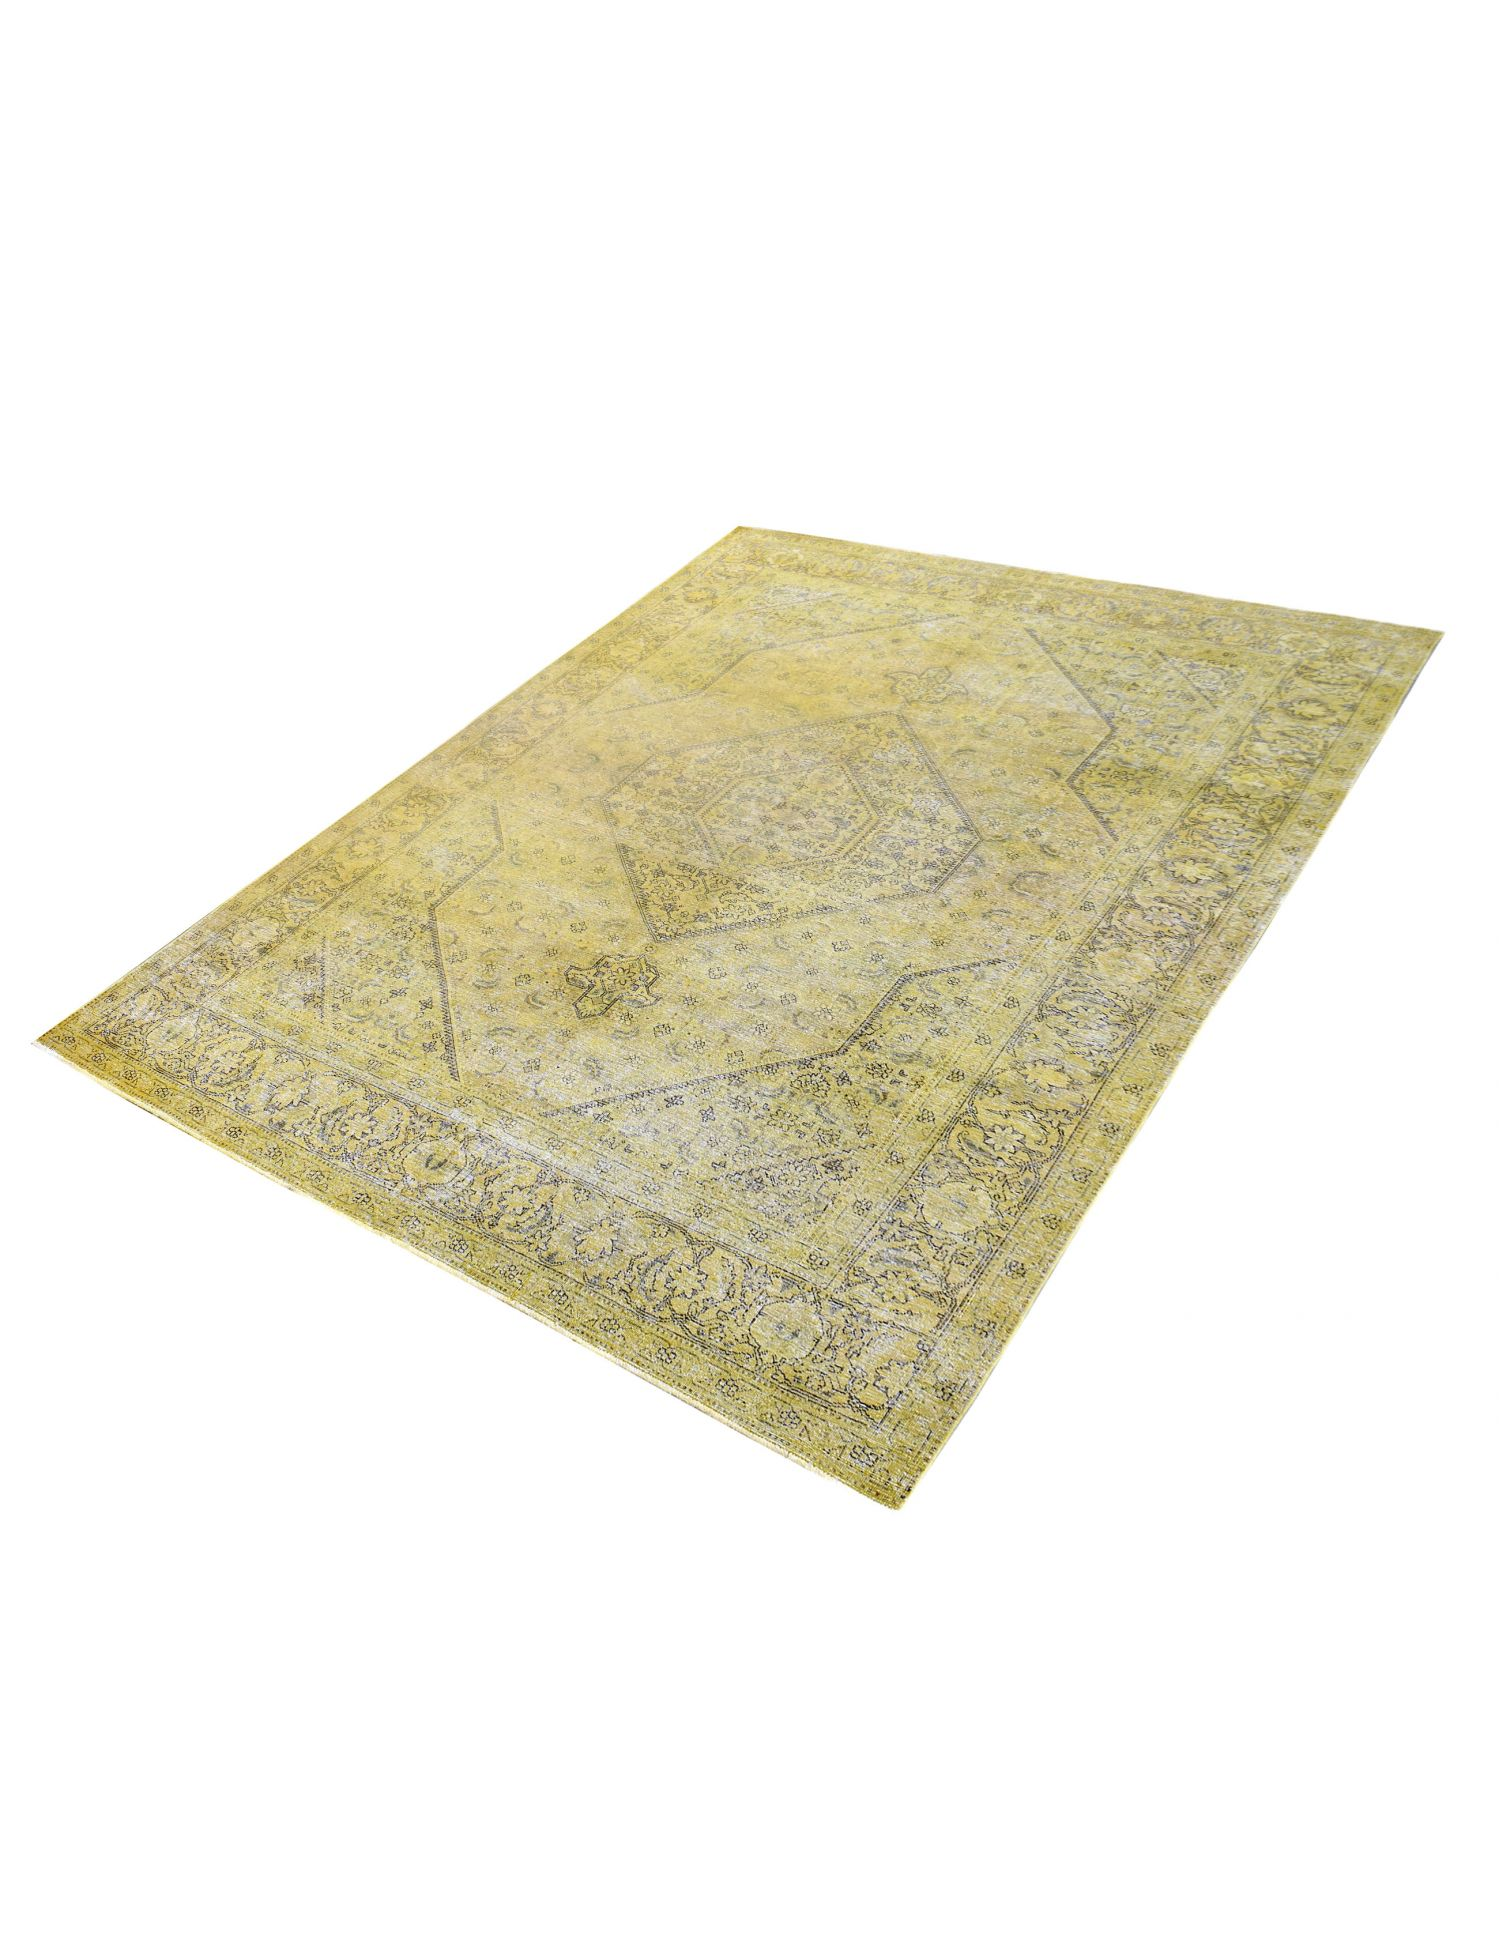 Vintage Carpet  yellow <br/>316 x 223 cm